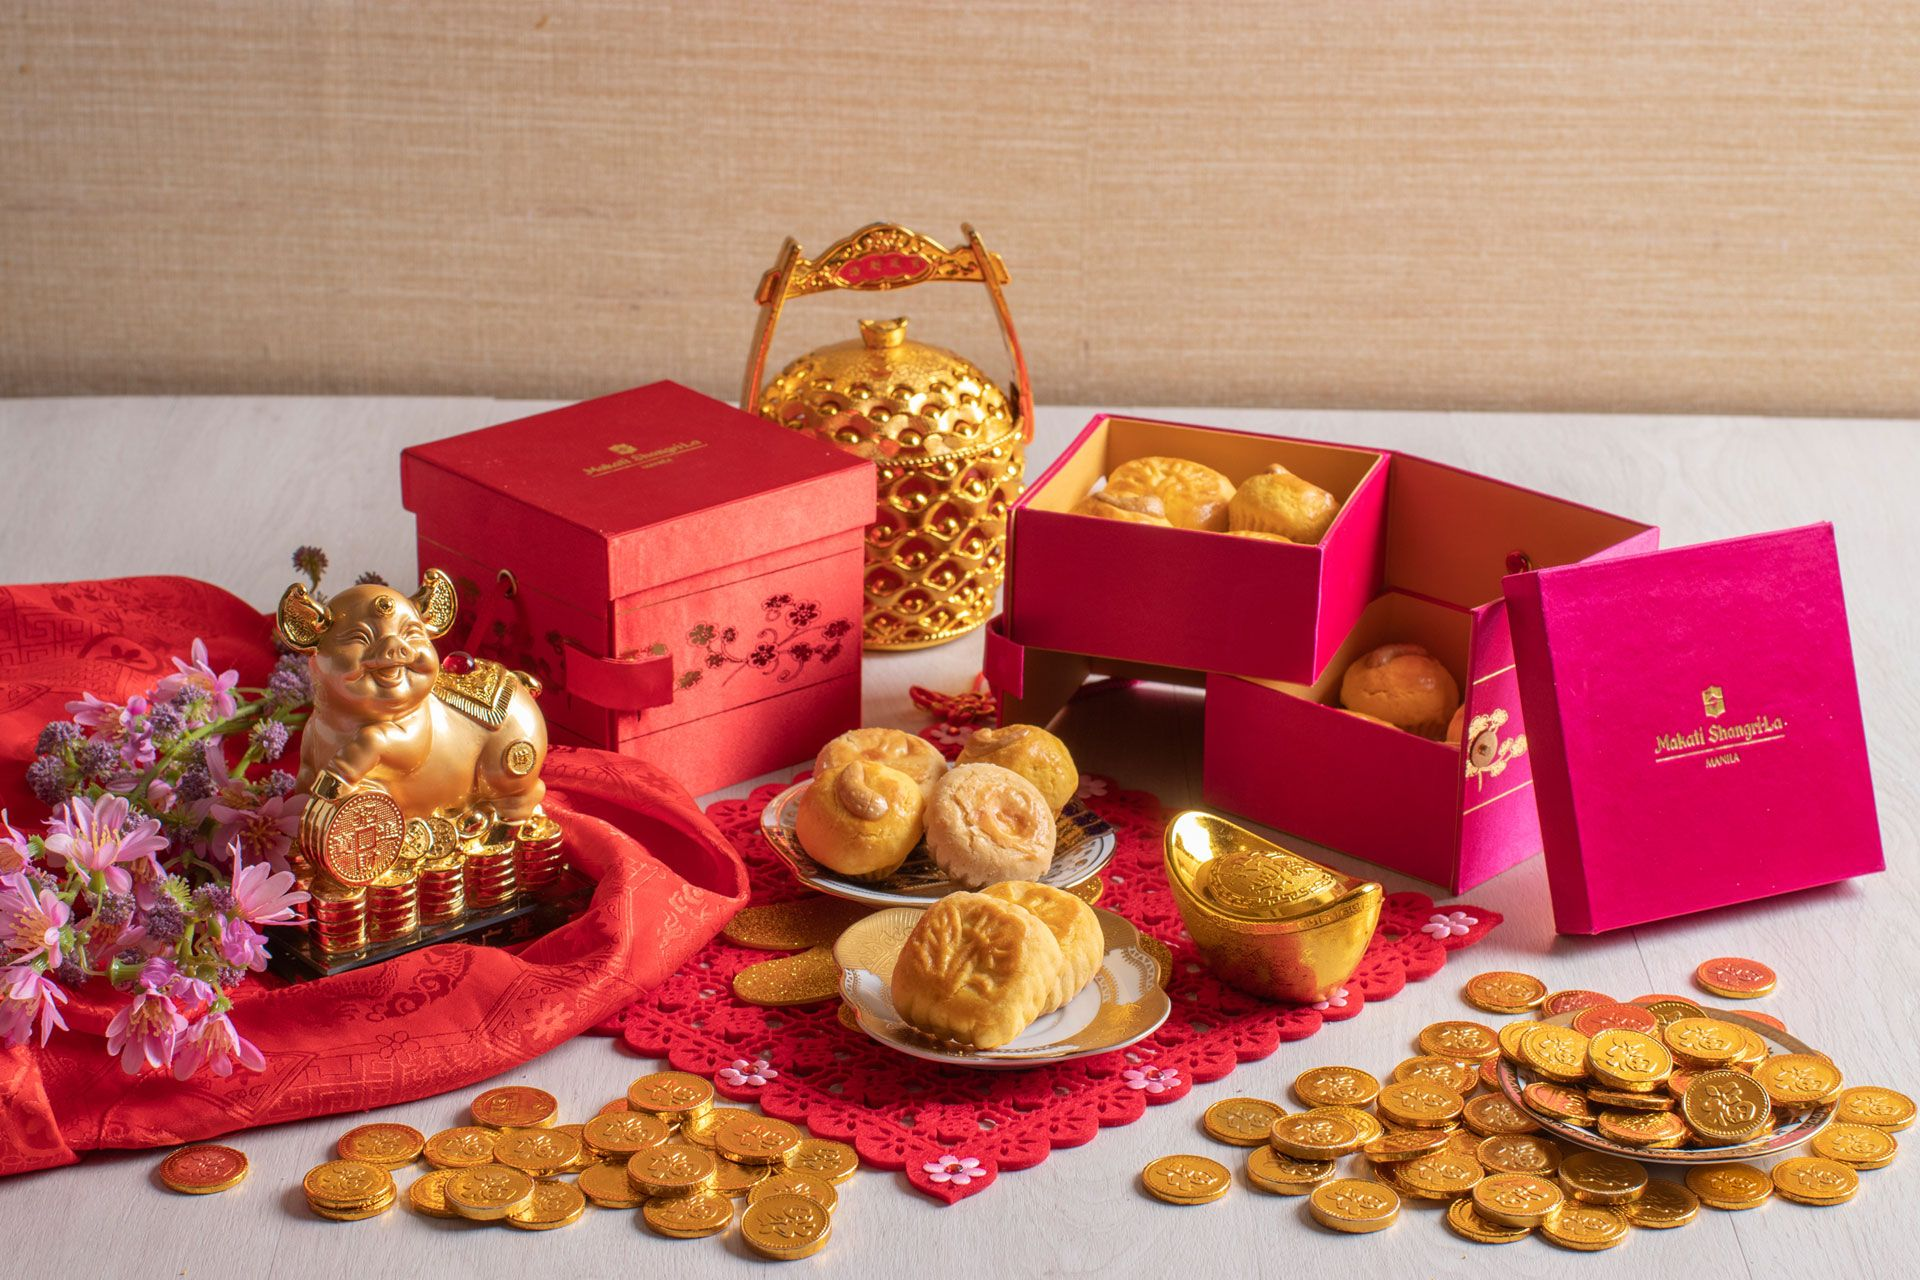 Shang Palace Welcomes The Year Of The Earth Pig With Auspicious Treats